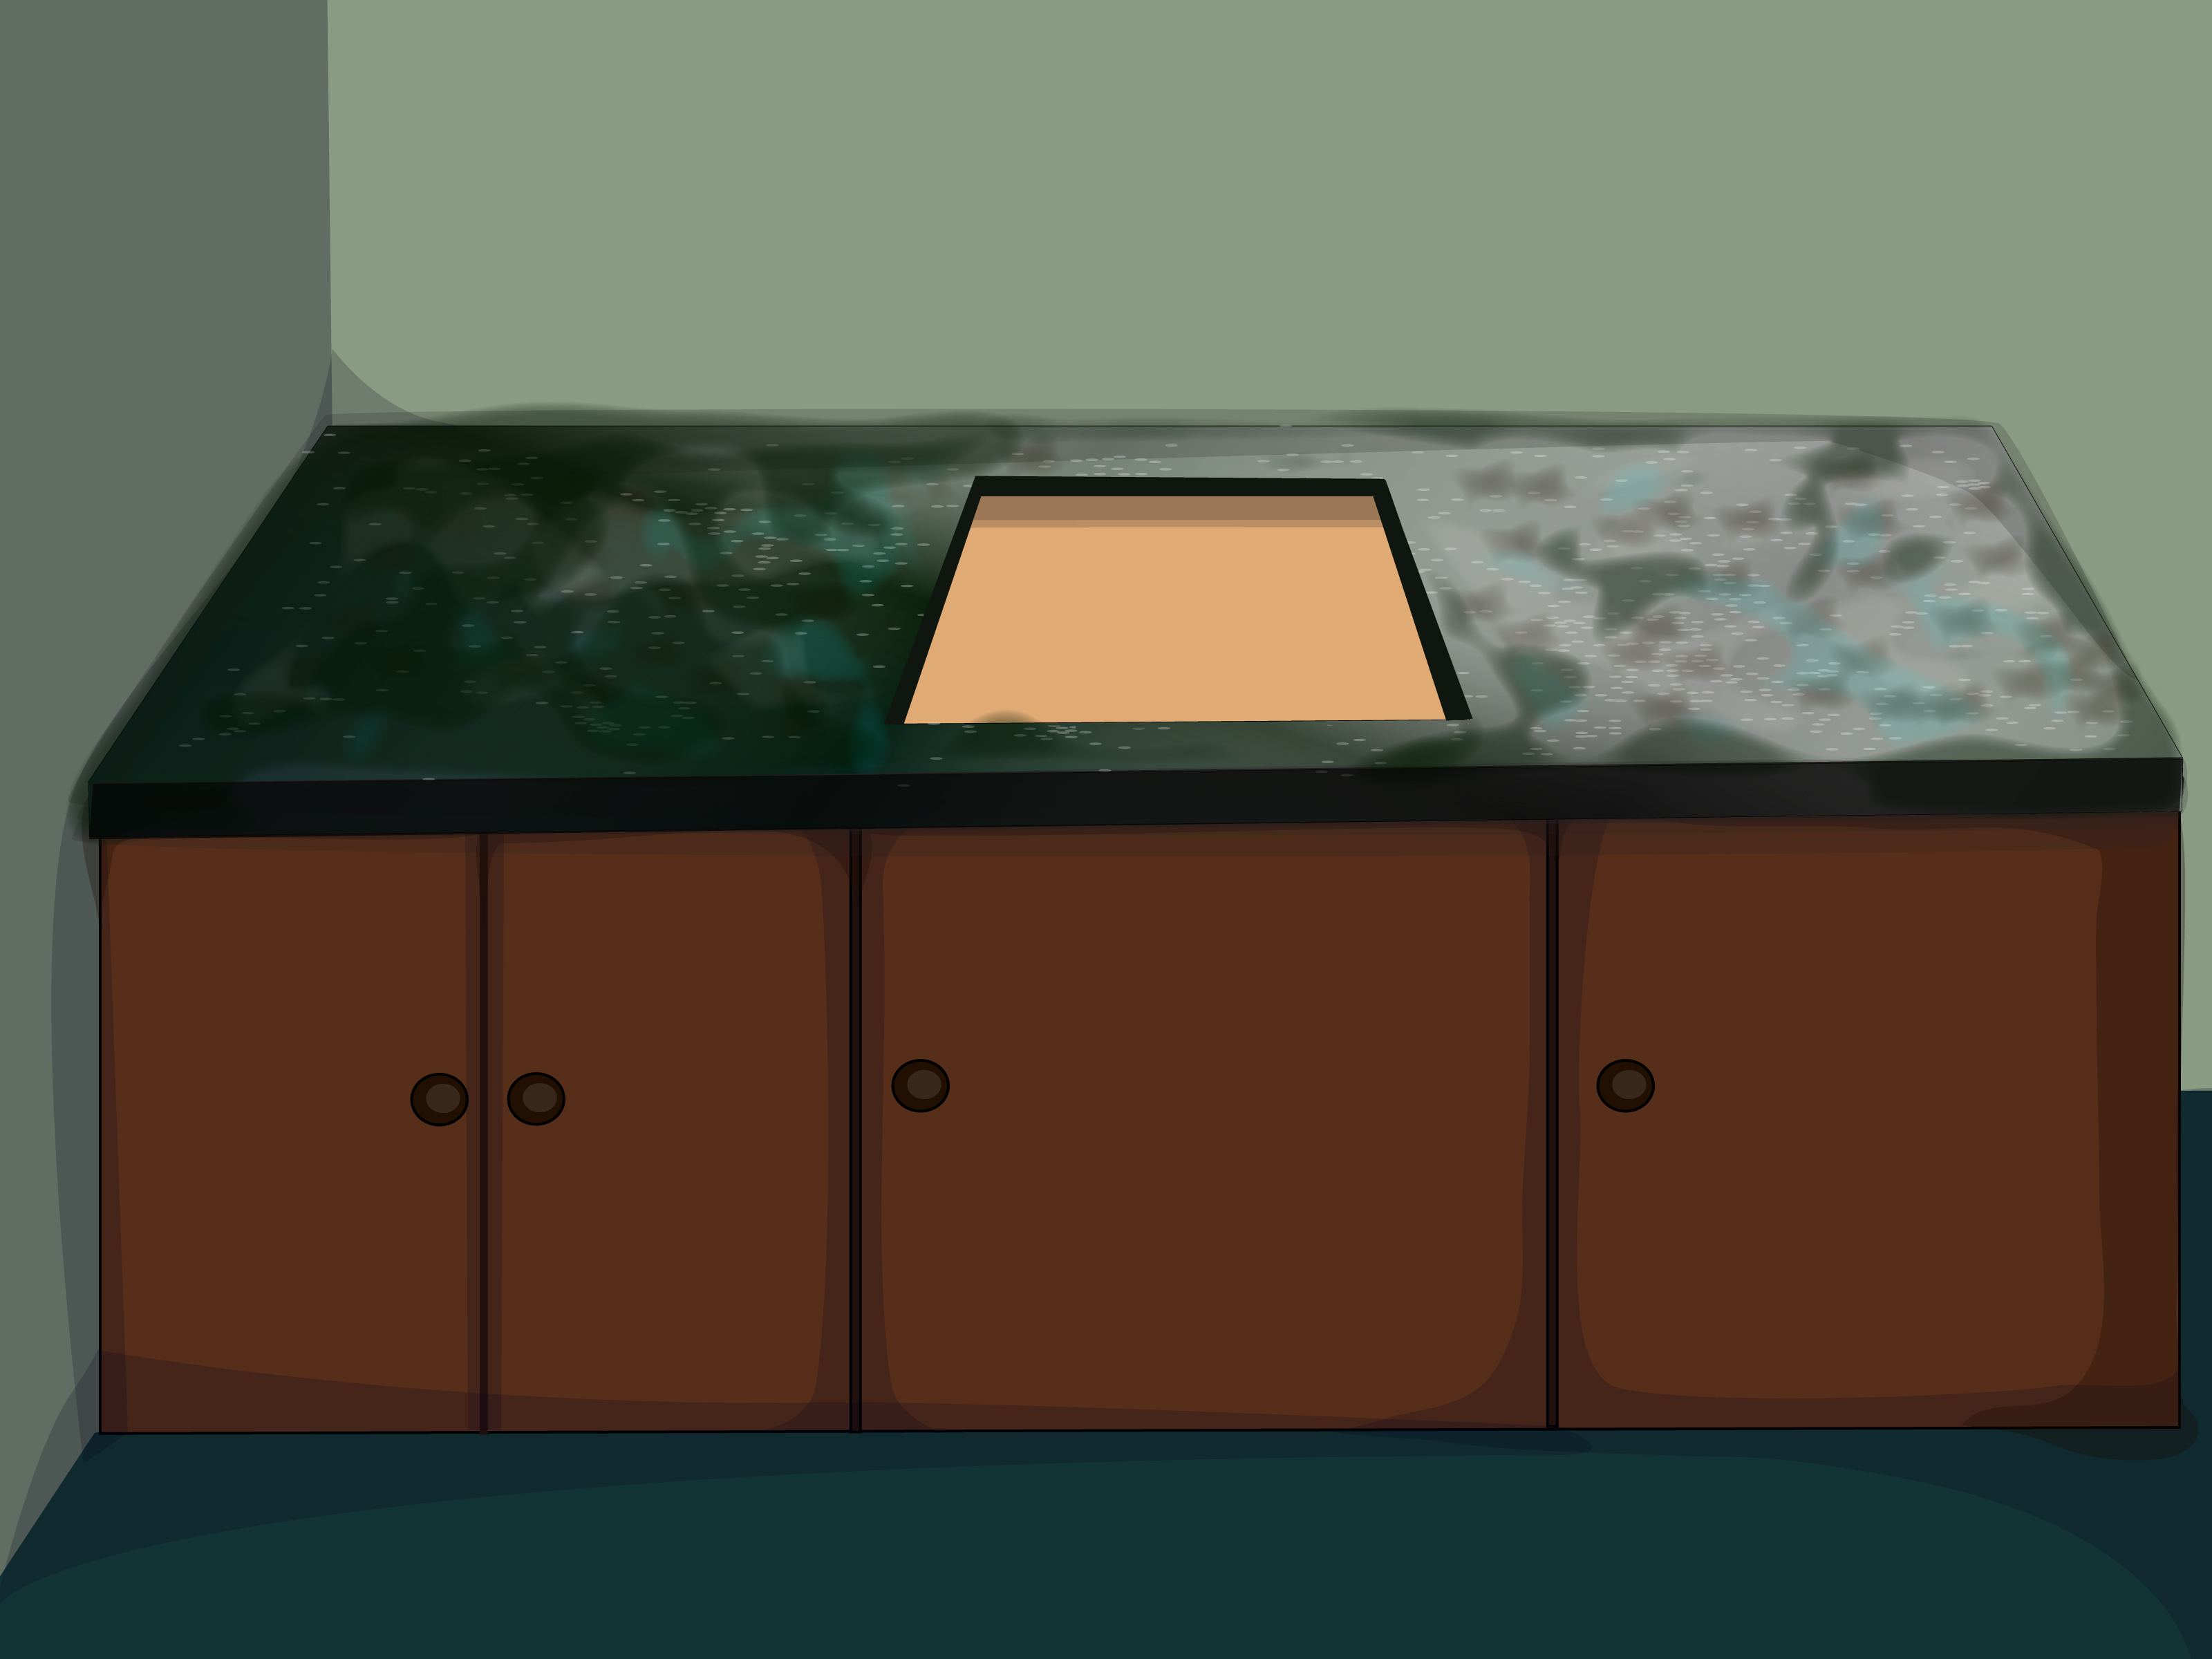 How To Grind Granite Countertops How To Install Granite Countertops 11 Steps Wikihow